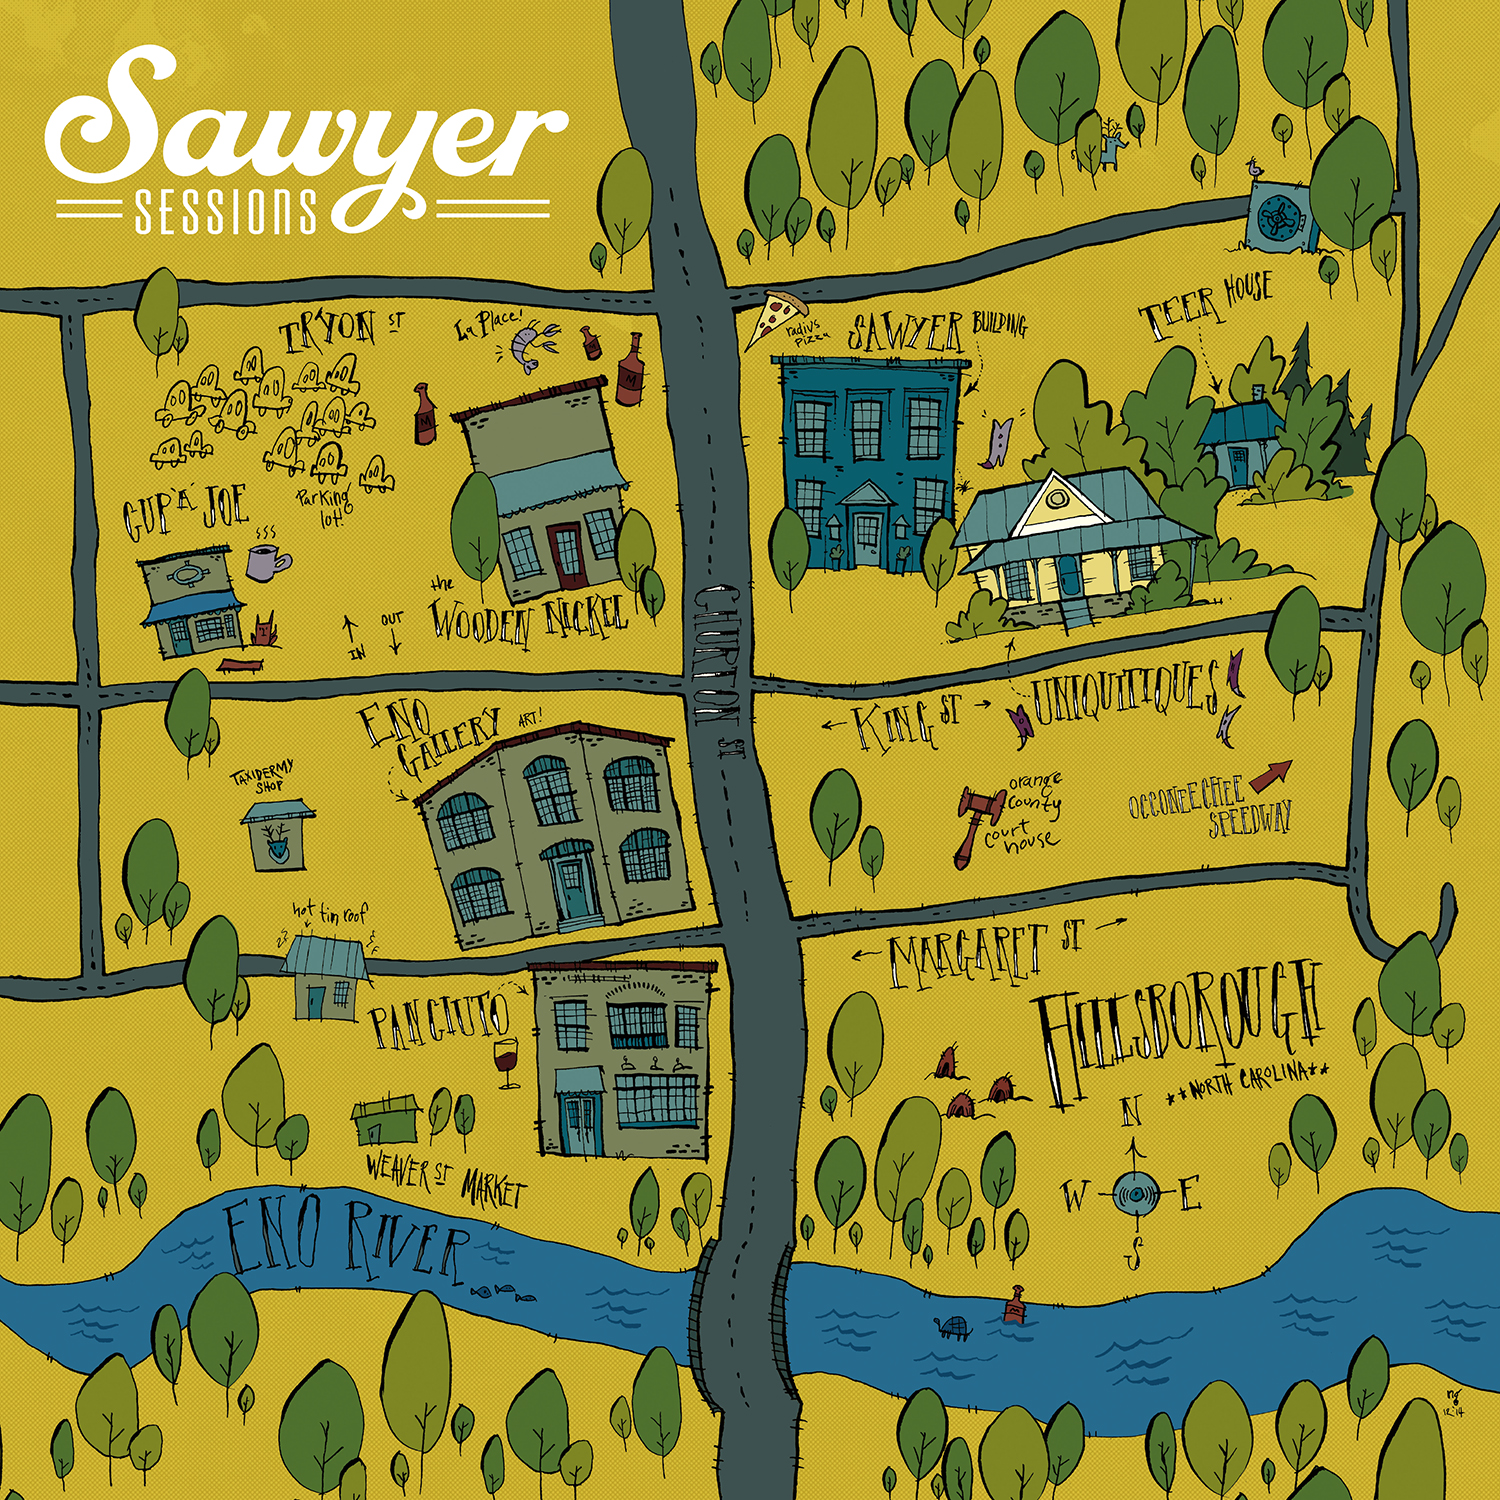 SawyerSession_Season1_COVER